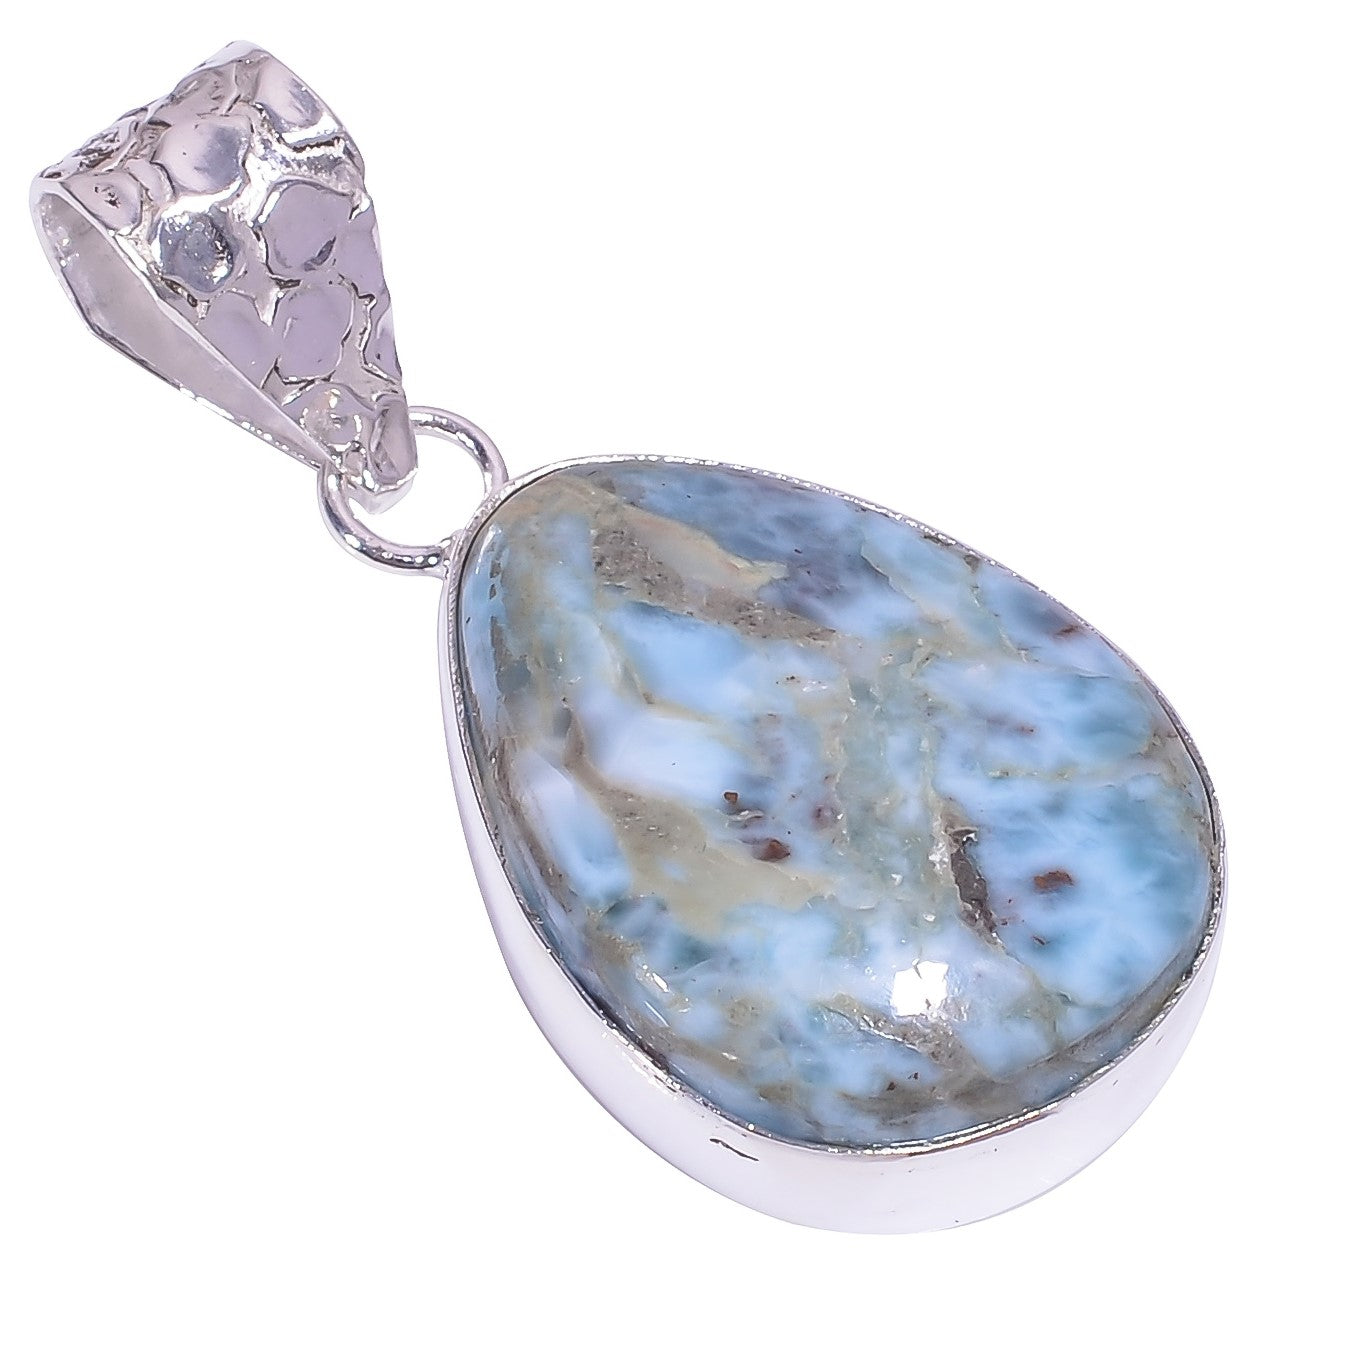 Bullahshah Ethnic Style Sterling Silver Overlay Blue Larimar Pear Shaped Gemstone Pendant, Natural Stone Handmade Necklace for Women with Rhodium Plated Chain, NLG-1631